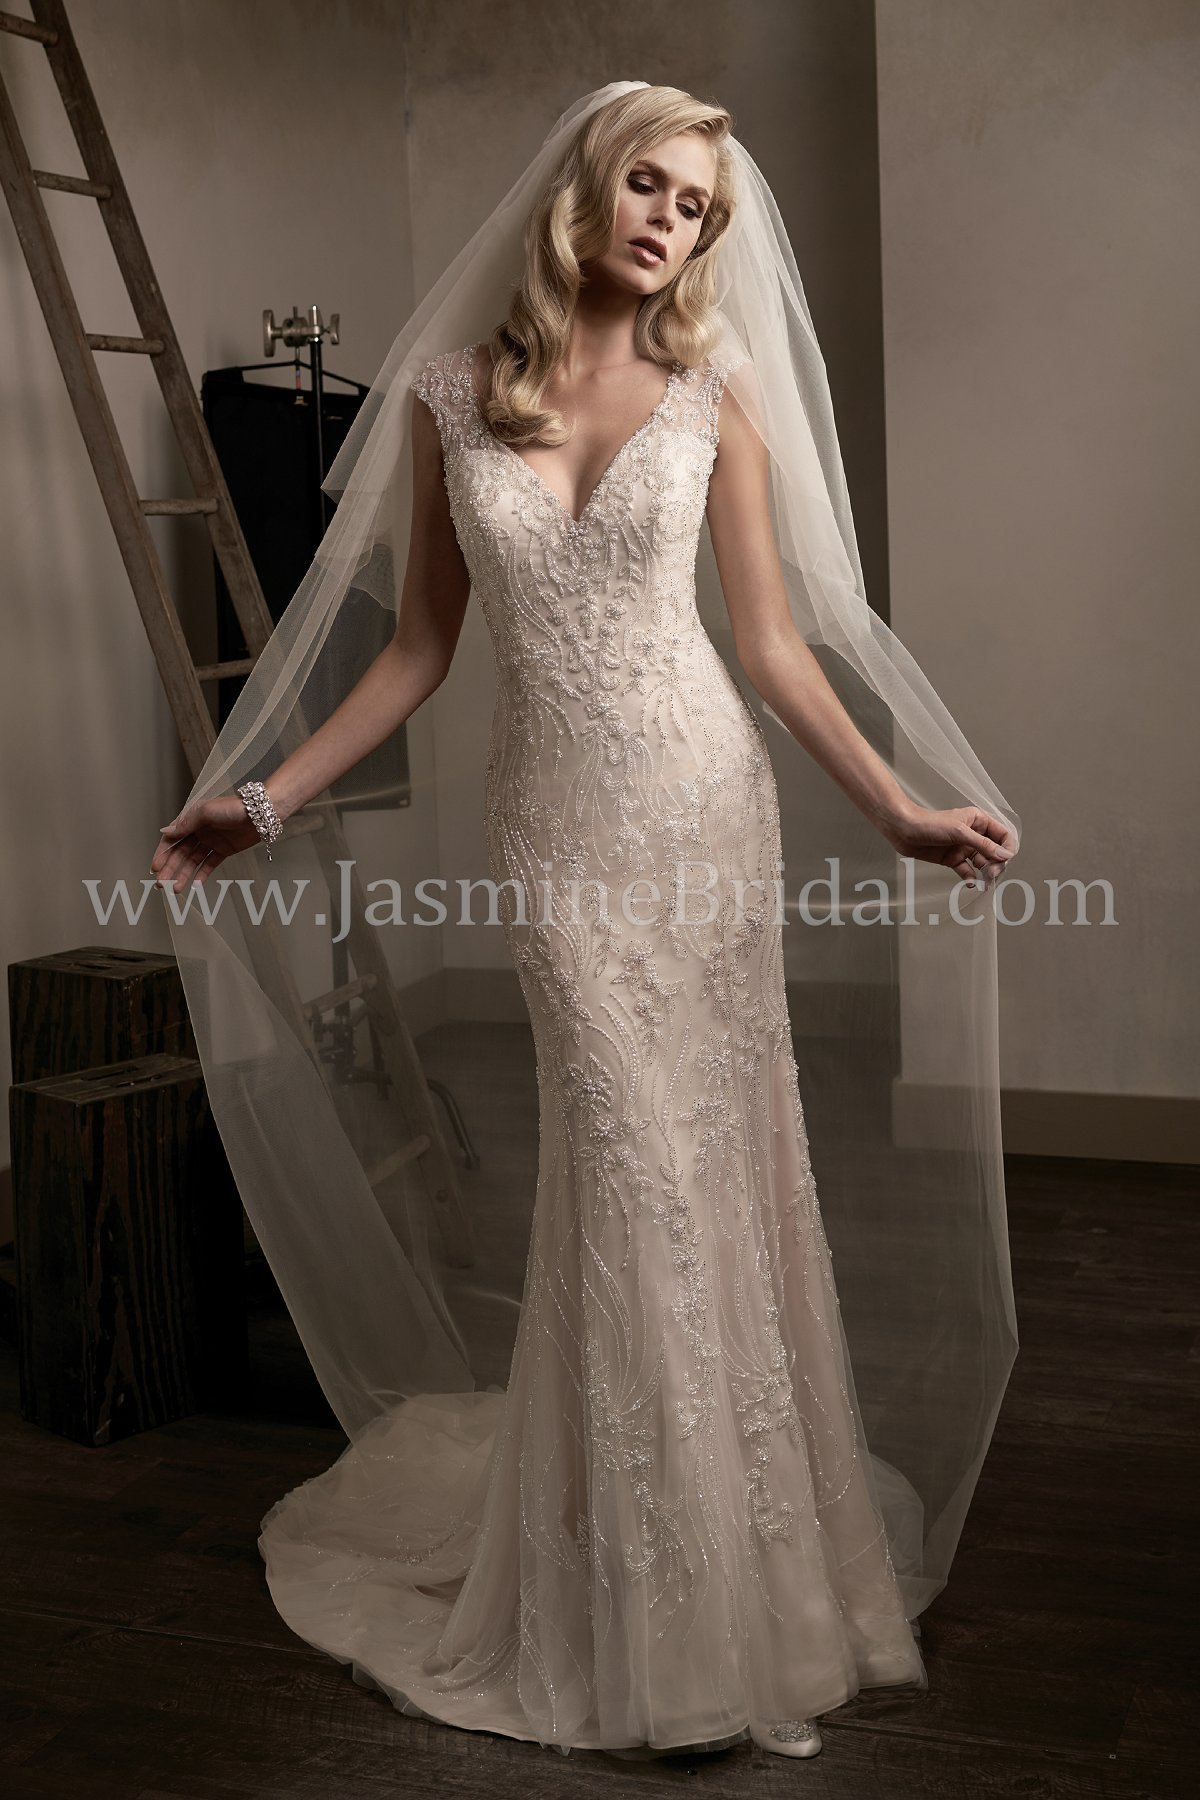 Inspired Vintage Wedding Dresses-Unique Lace Dress Styles at Jasmine ...